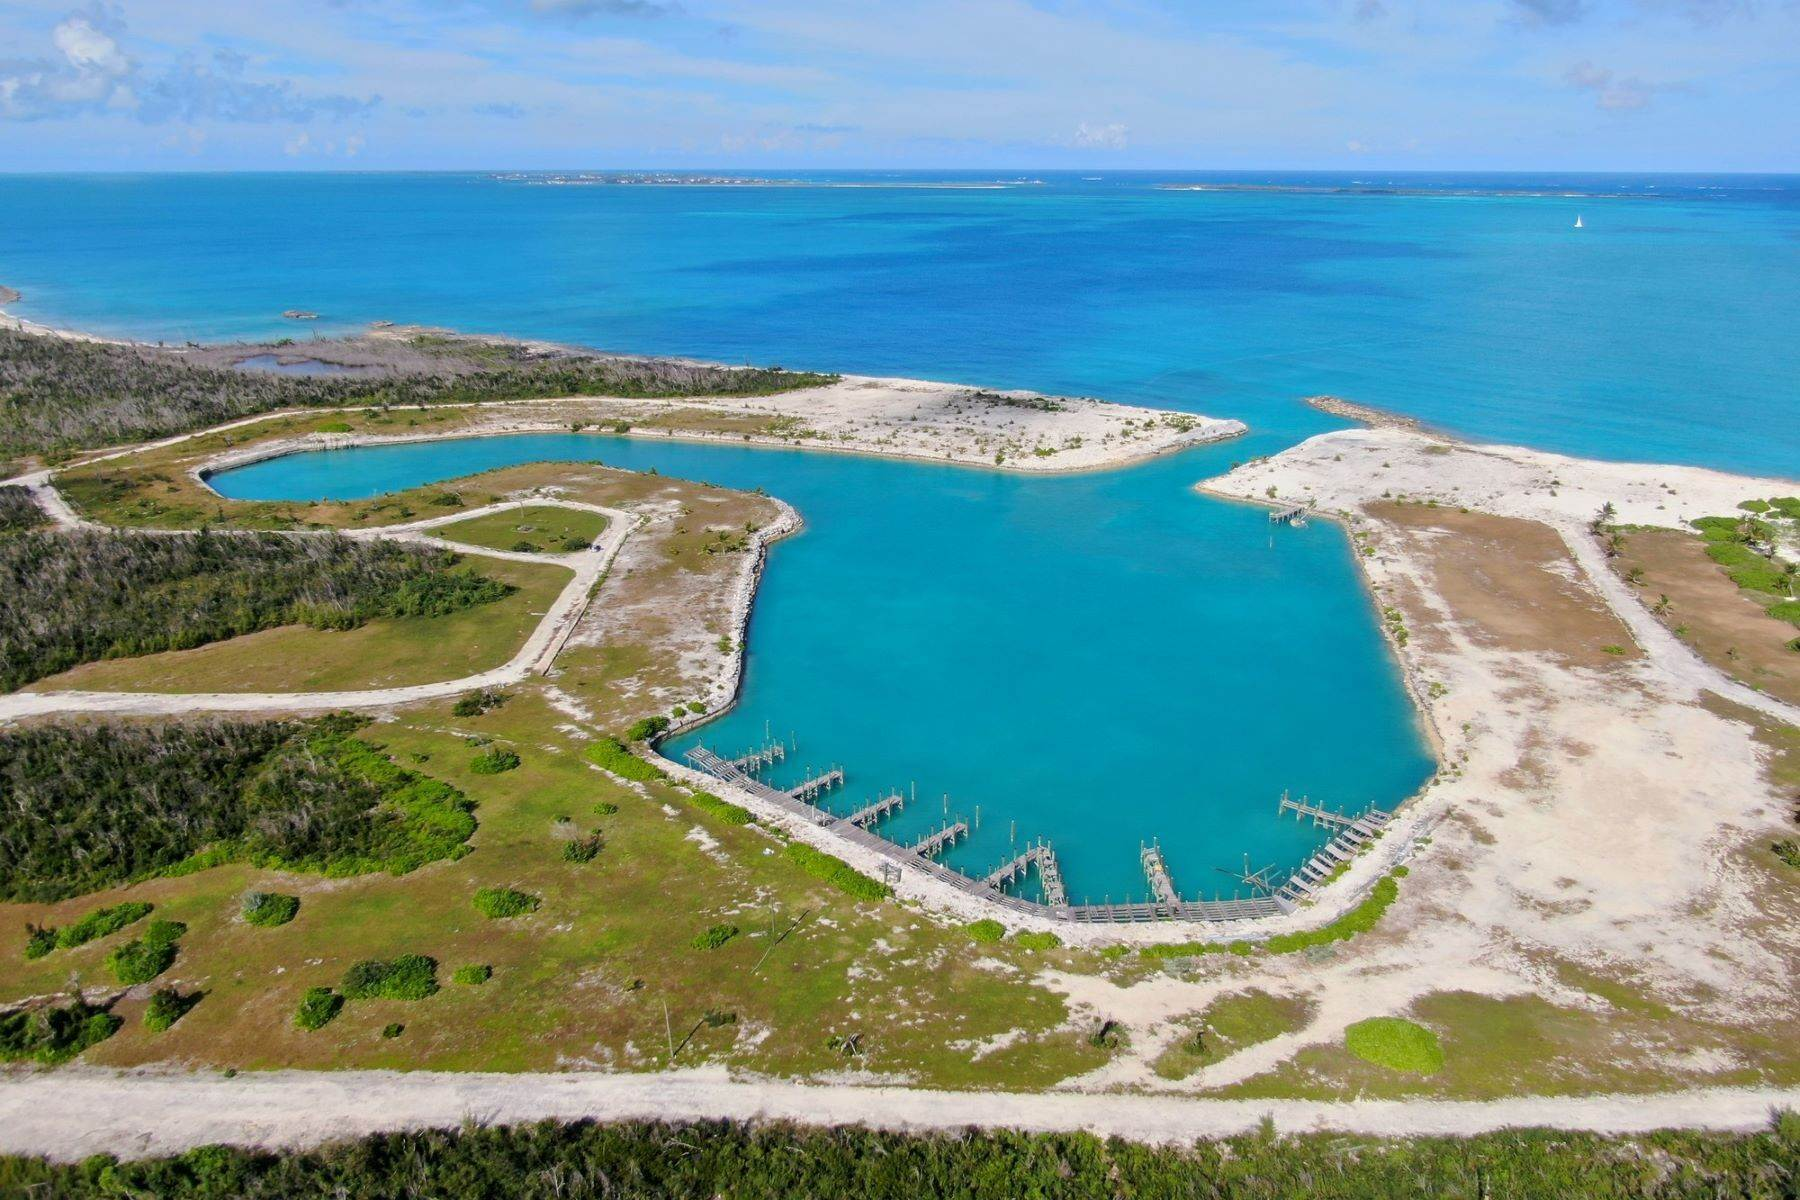 Property for Sale at Treasure Cay, Abaco Bahamas